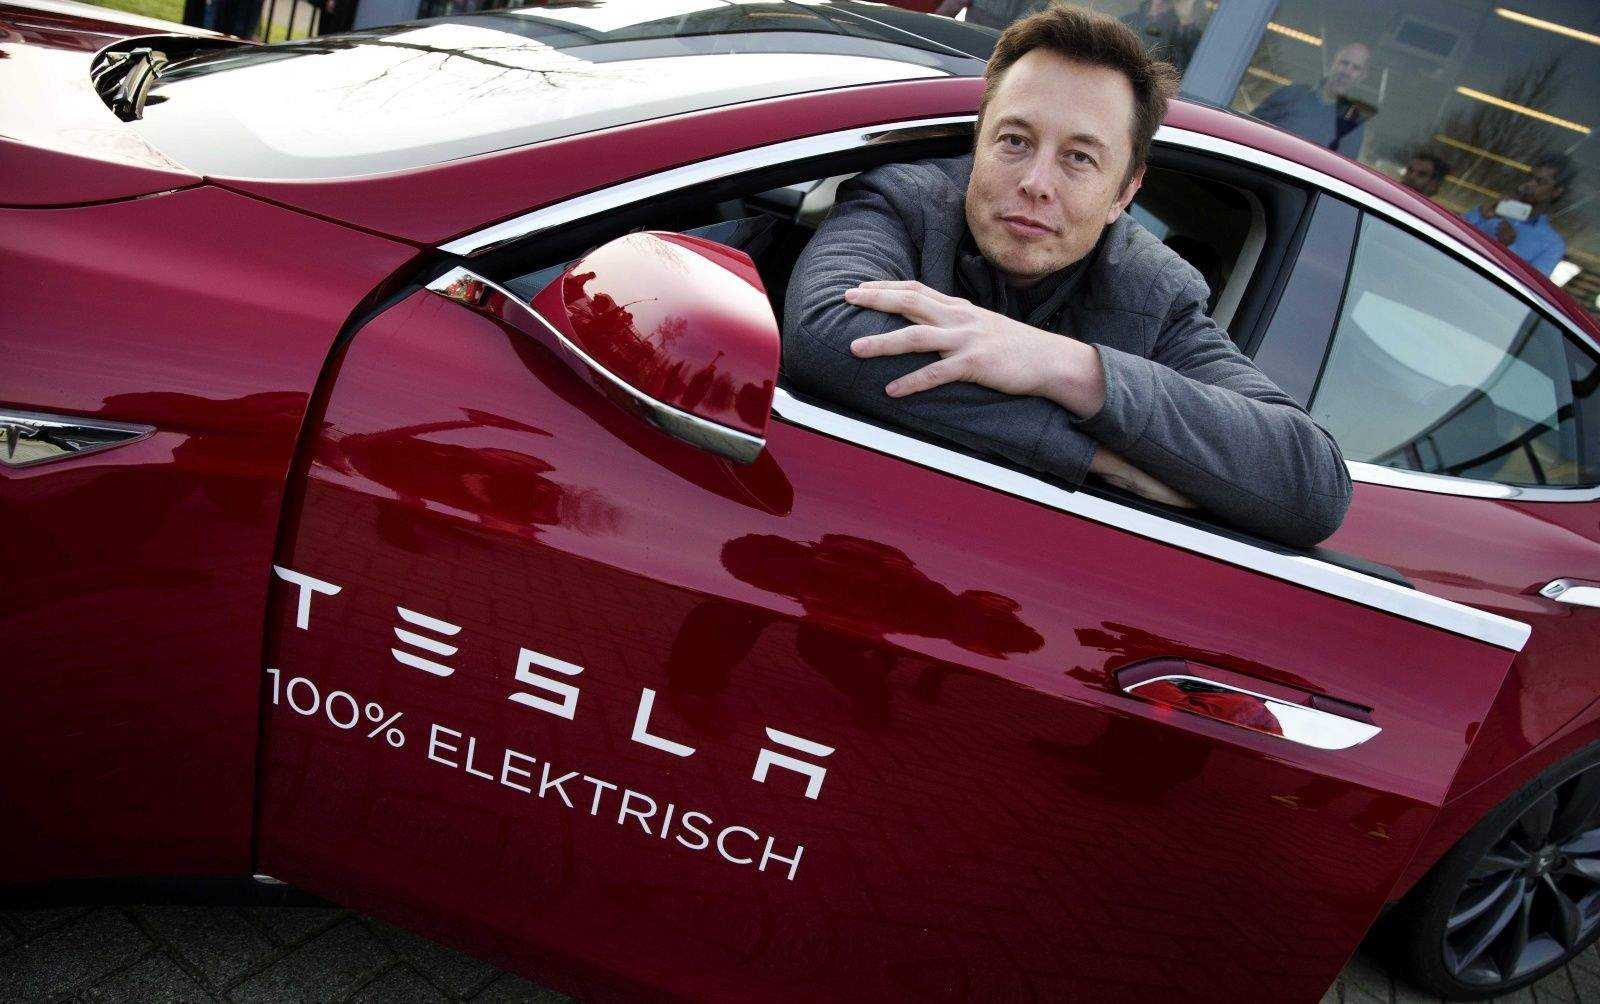 The billionaire founder of Tesla, Elon Musk, has been aggressively poaching Apple engineers.